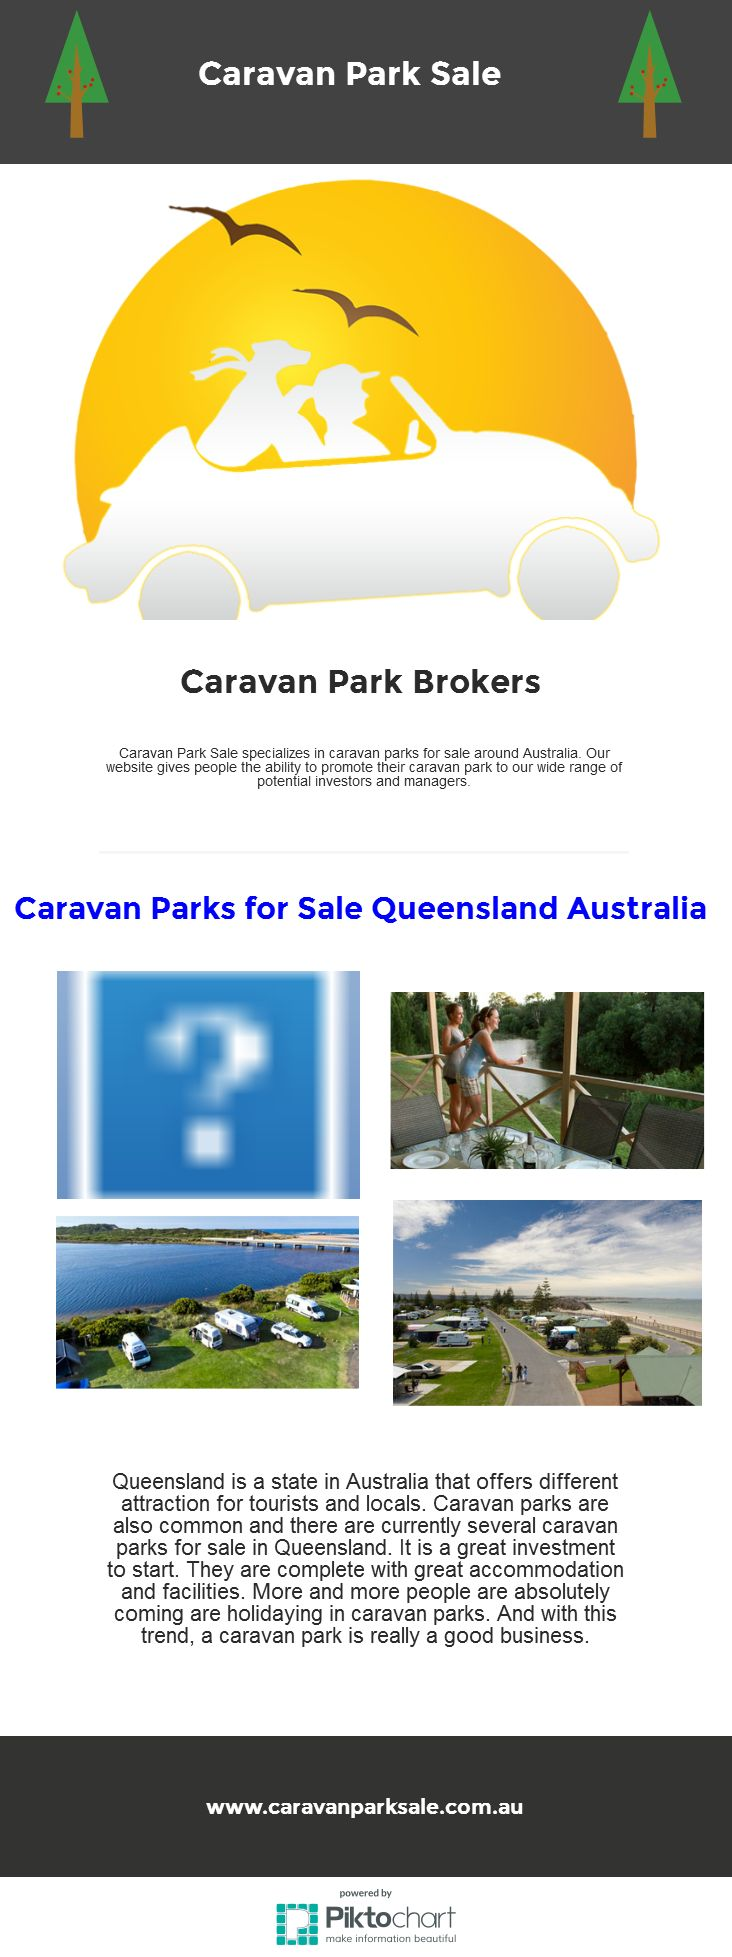 QLD Caravan Parks For Sale Are You Looking Worry No More Take A Look And Consider The Listings We Have